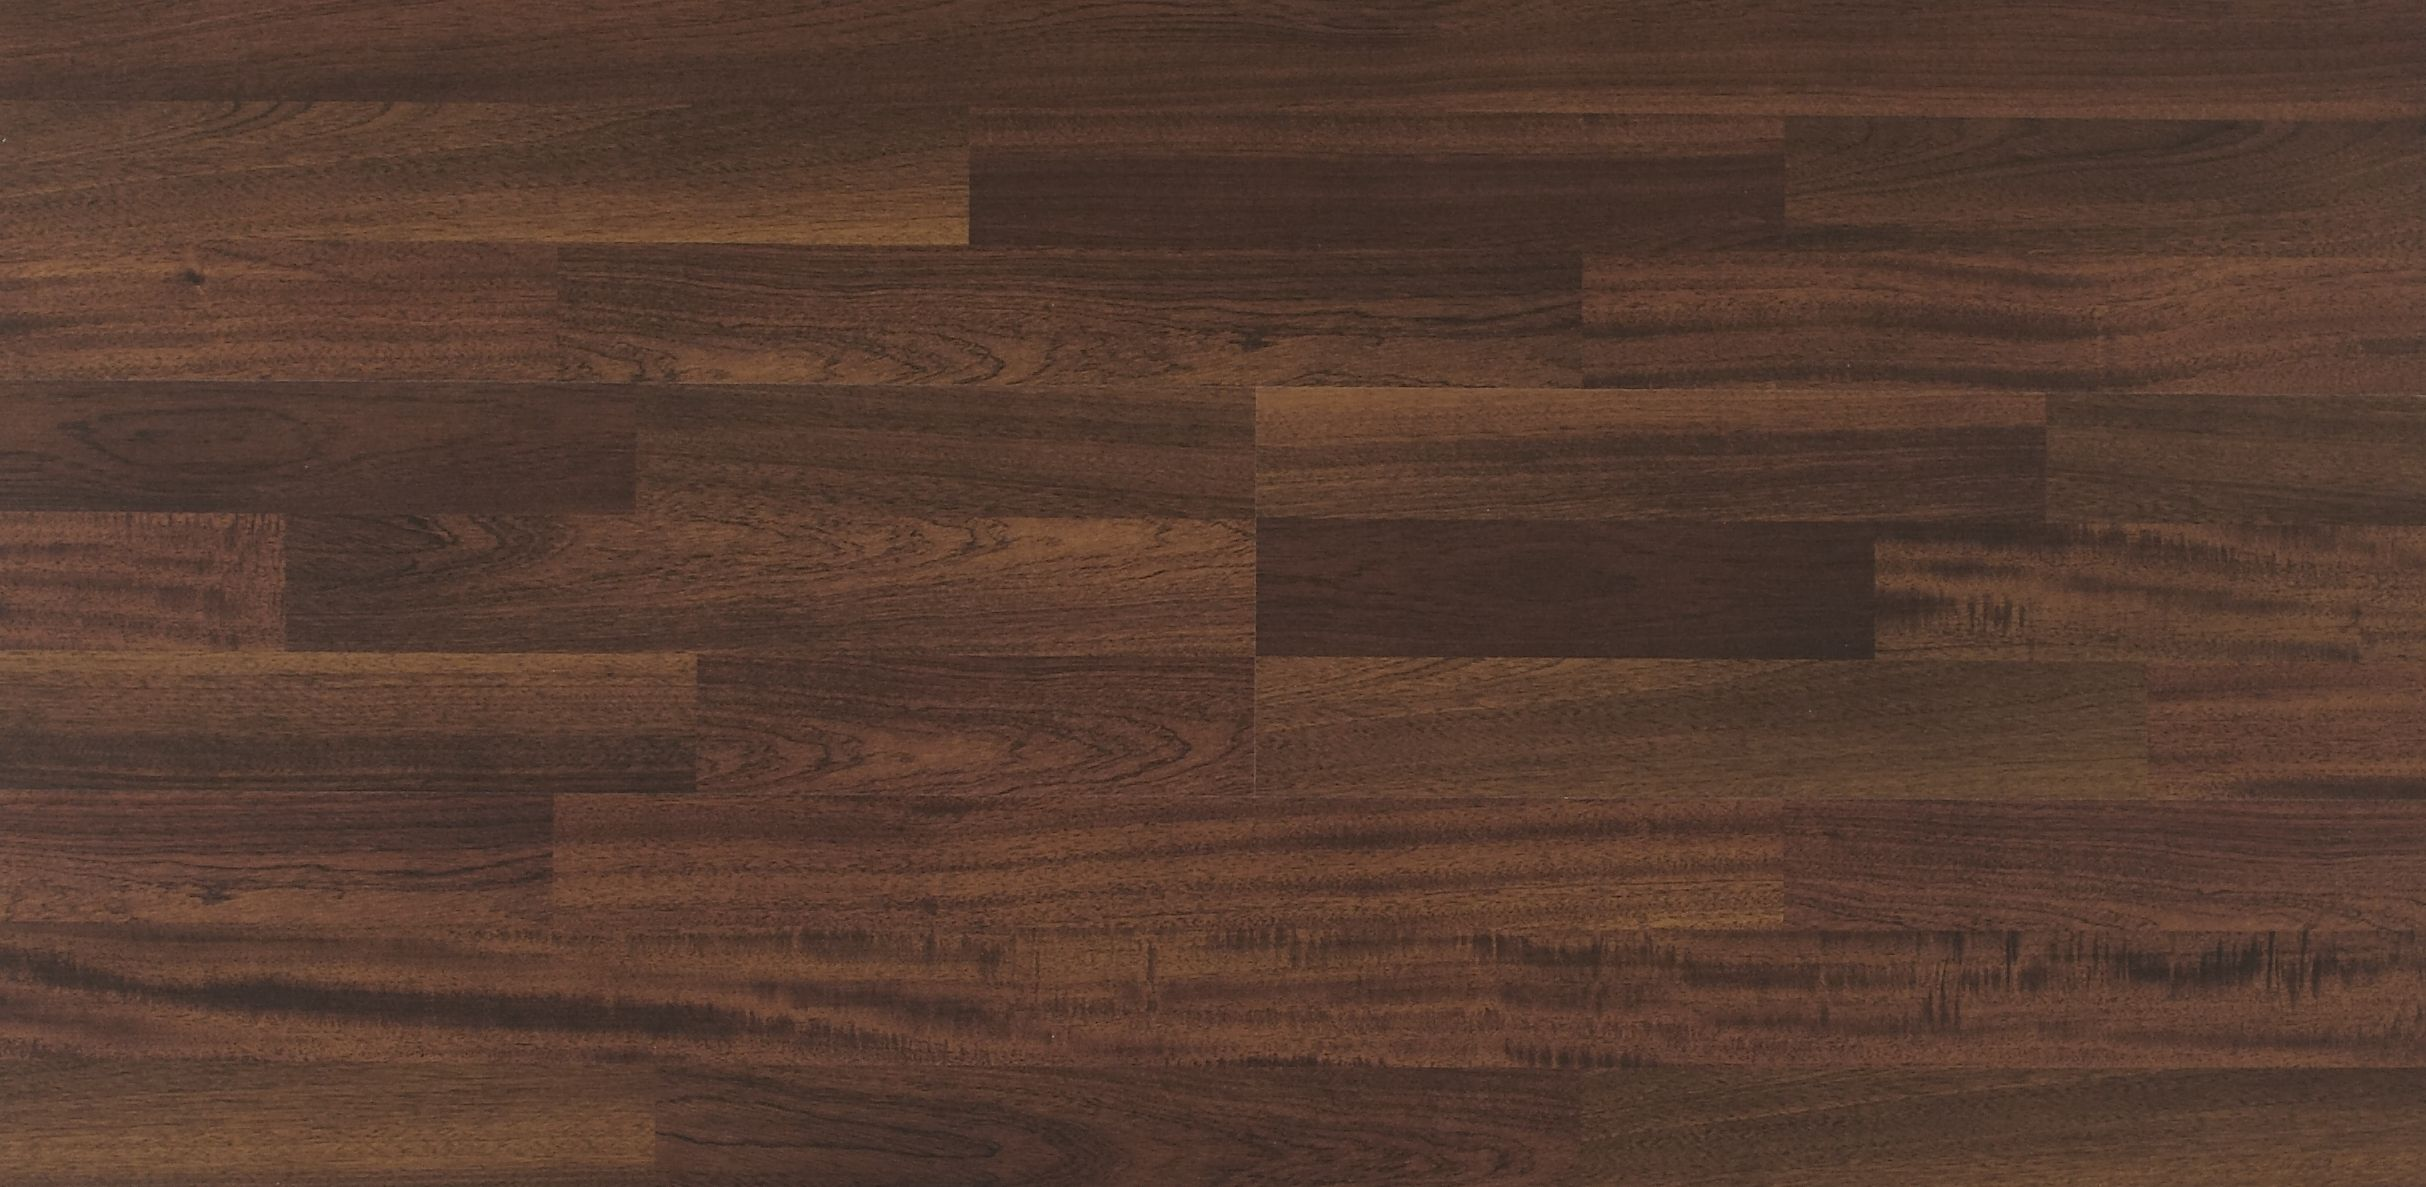 Wood background texture, wooden tiles free image Wood